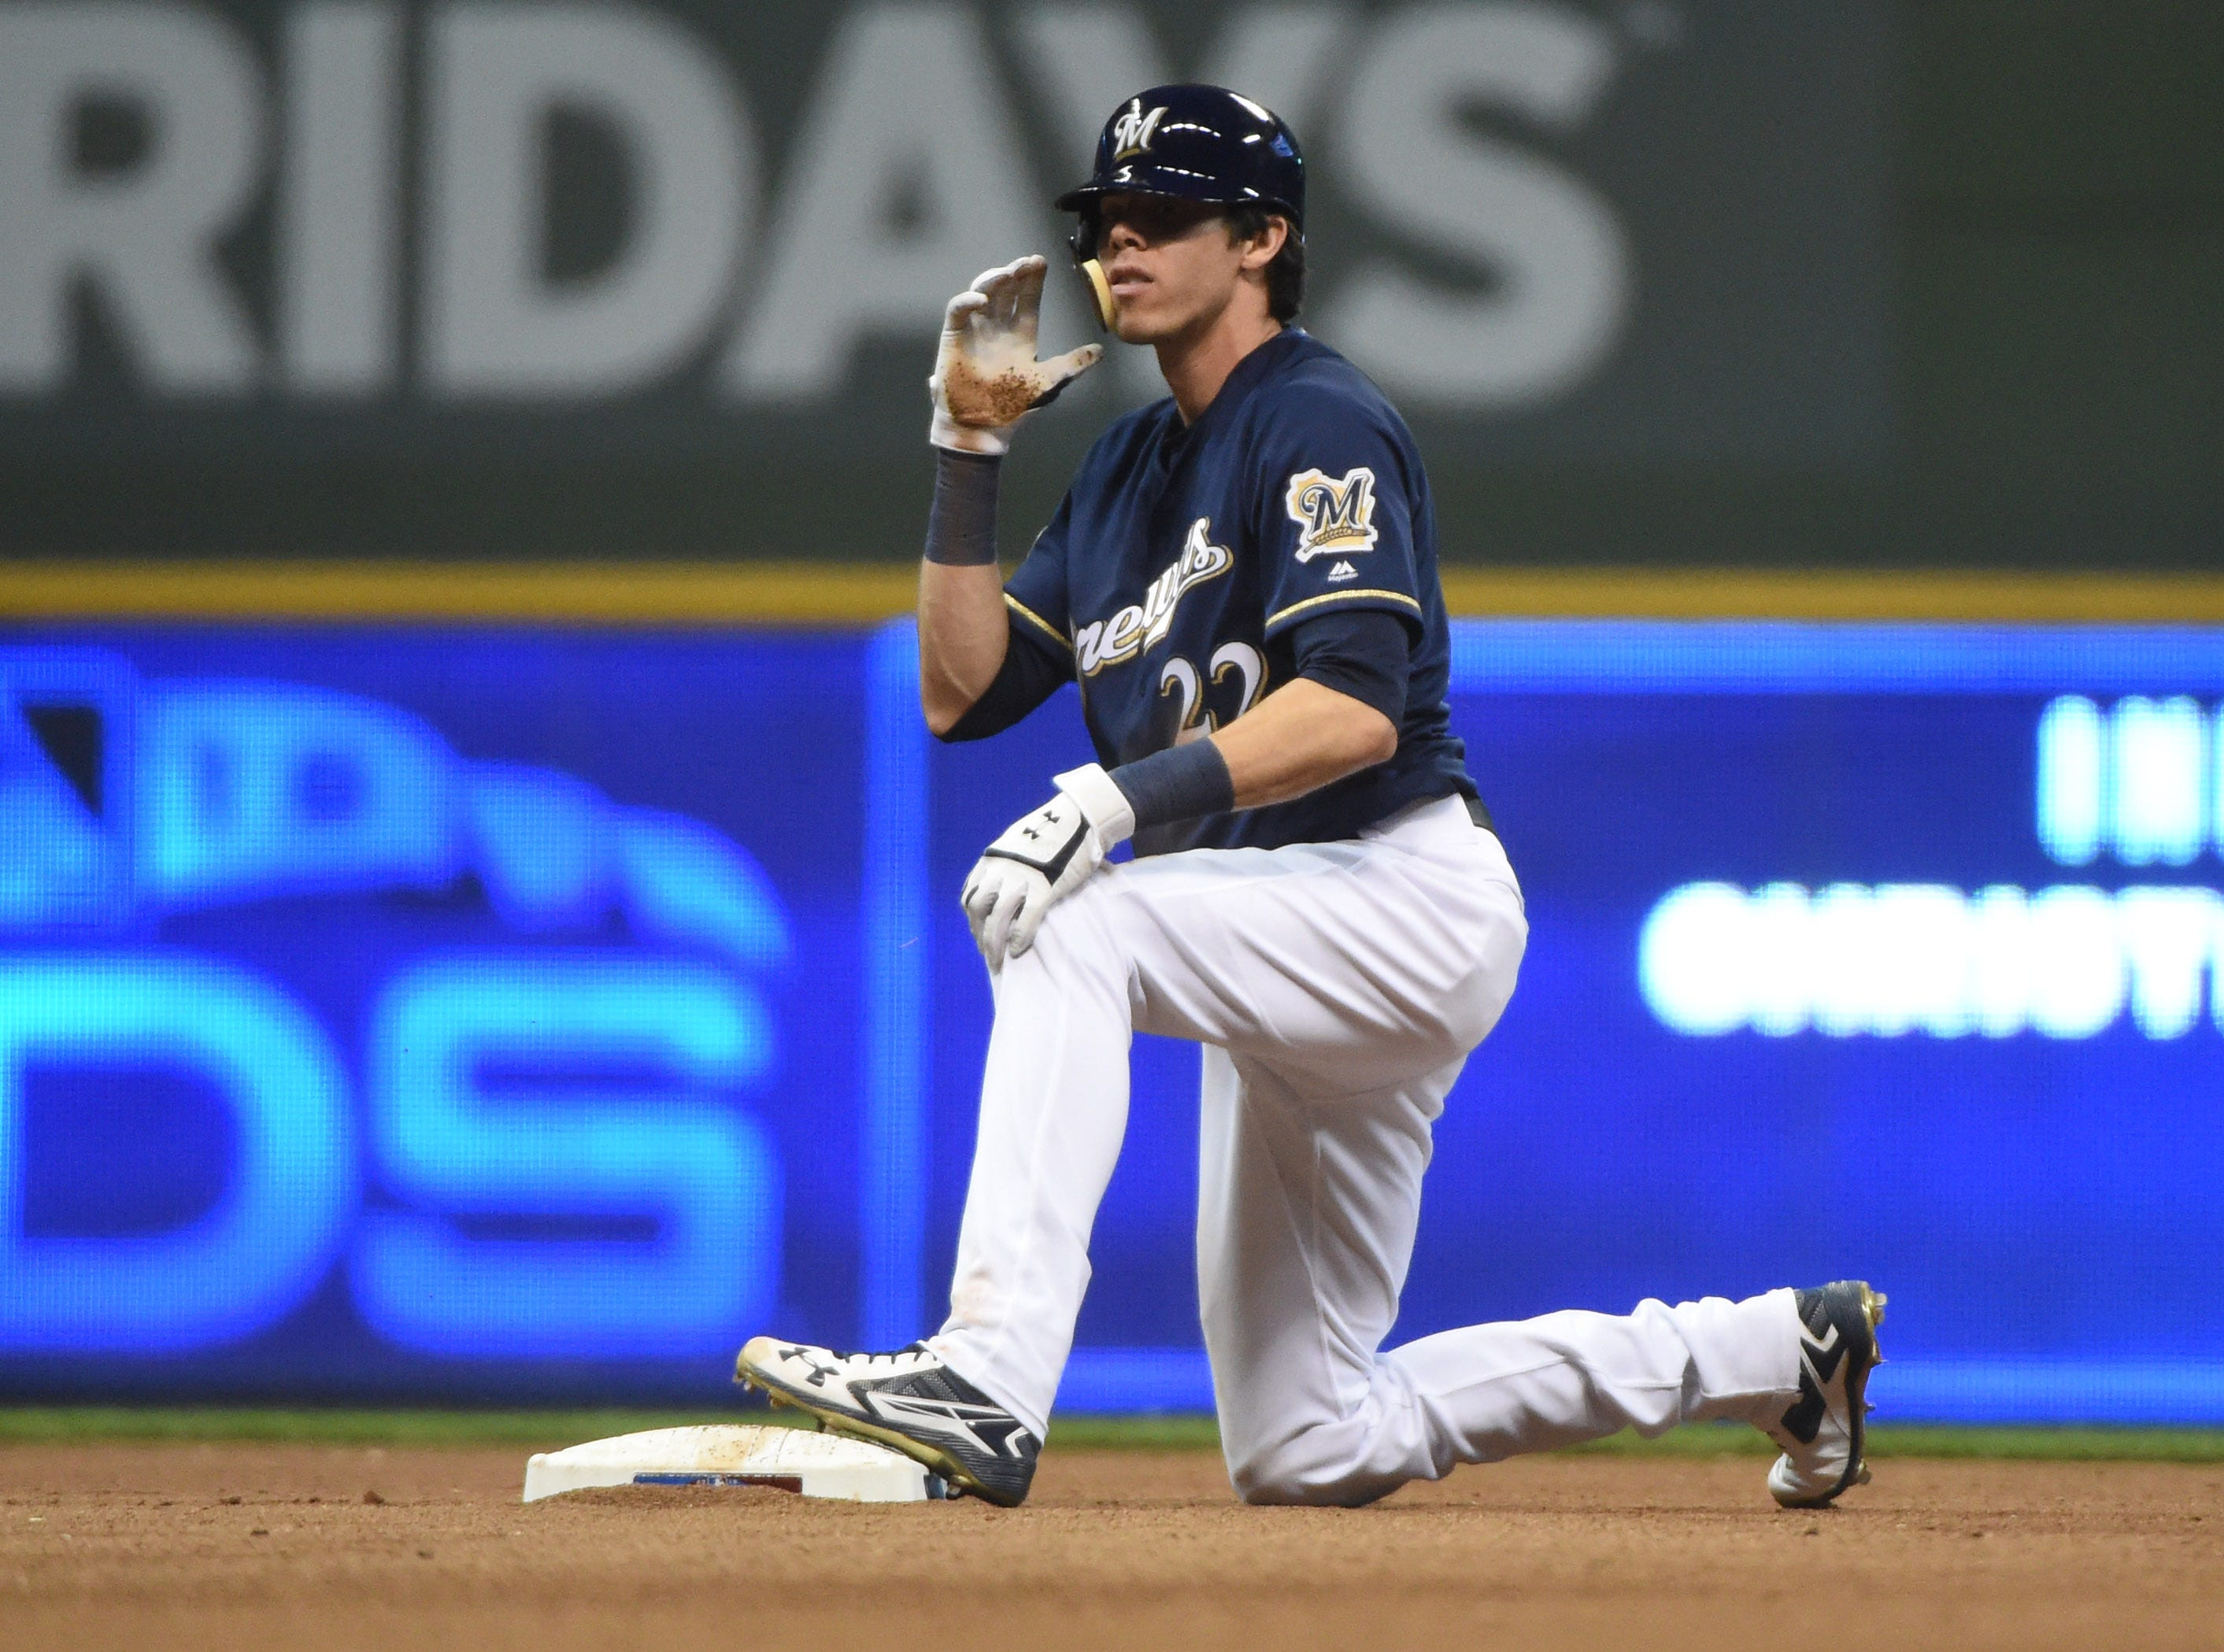 NLDS Game 1: Christian Yelich reacts after stealing second base in the eighth inning.